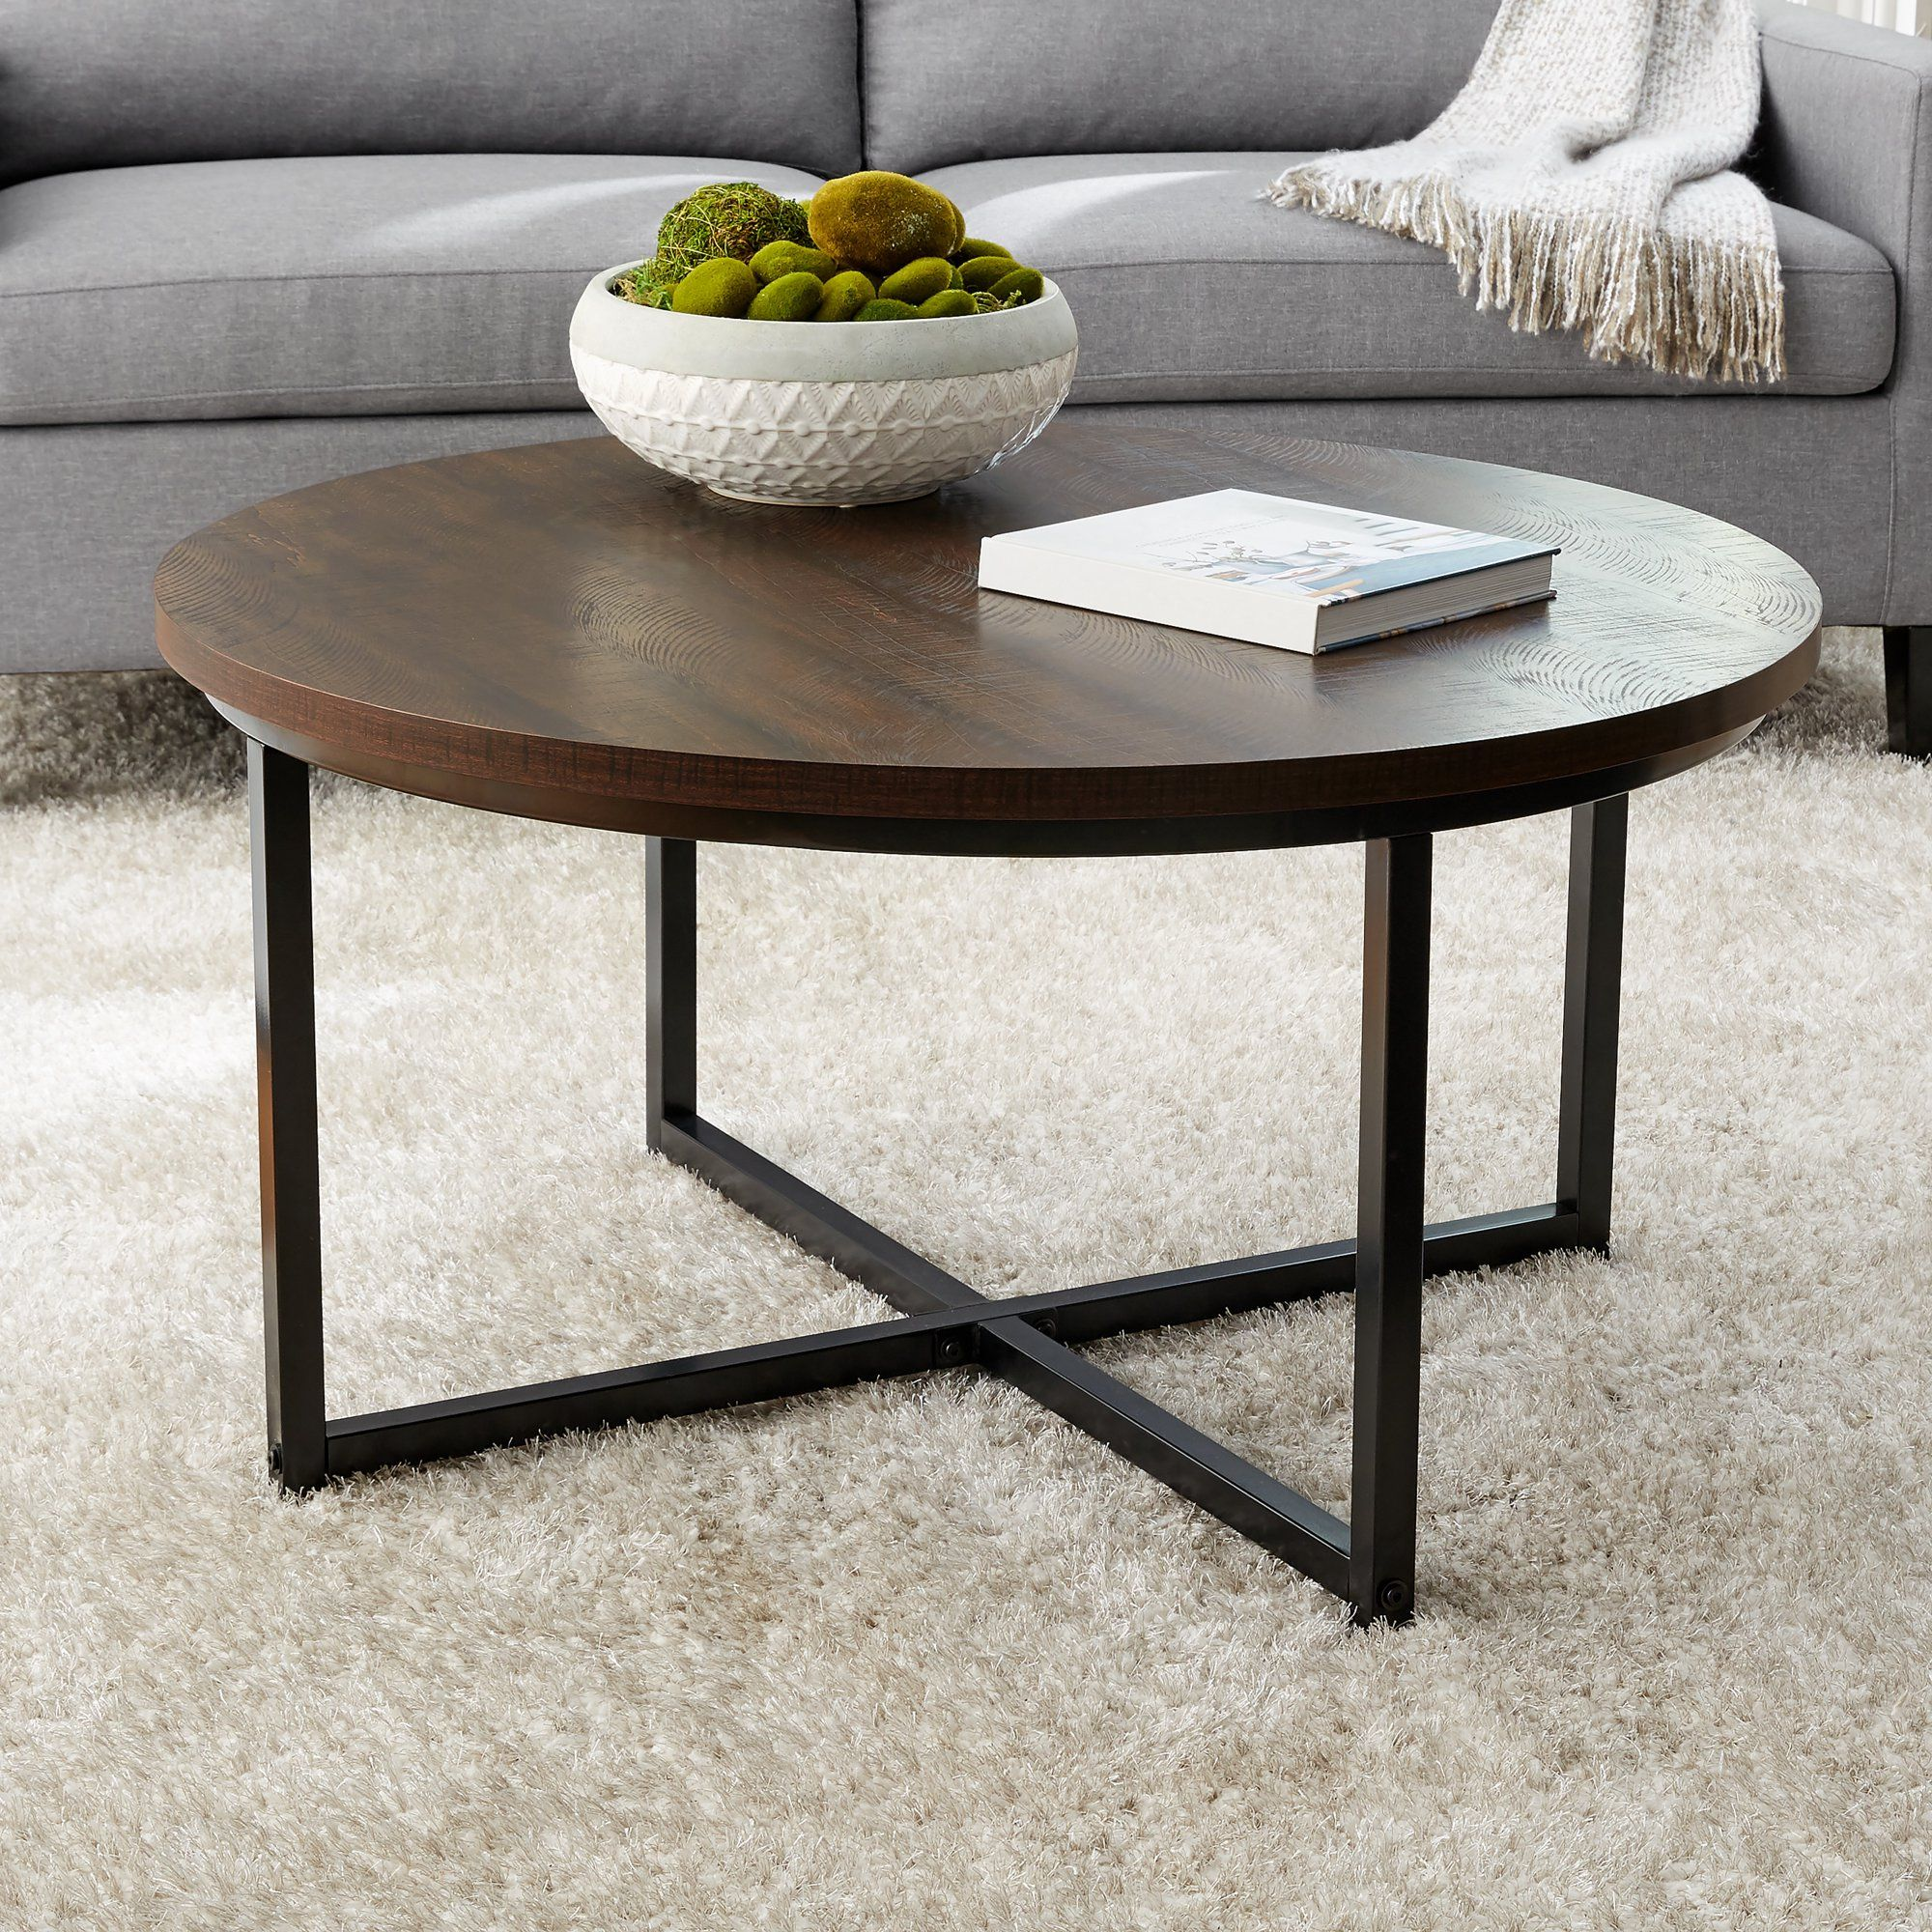 Mainstays Round Coffee Table With Metal Legs 36 D X 19 H Walmart Com Coffee Table Round Coffee Table Stylish Coffee Table [ 2000 x 2000 Pixel ]